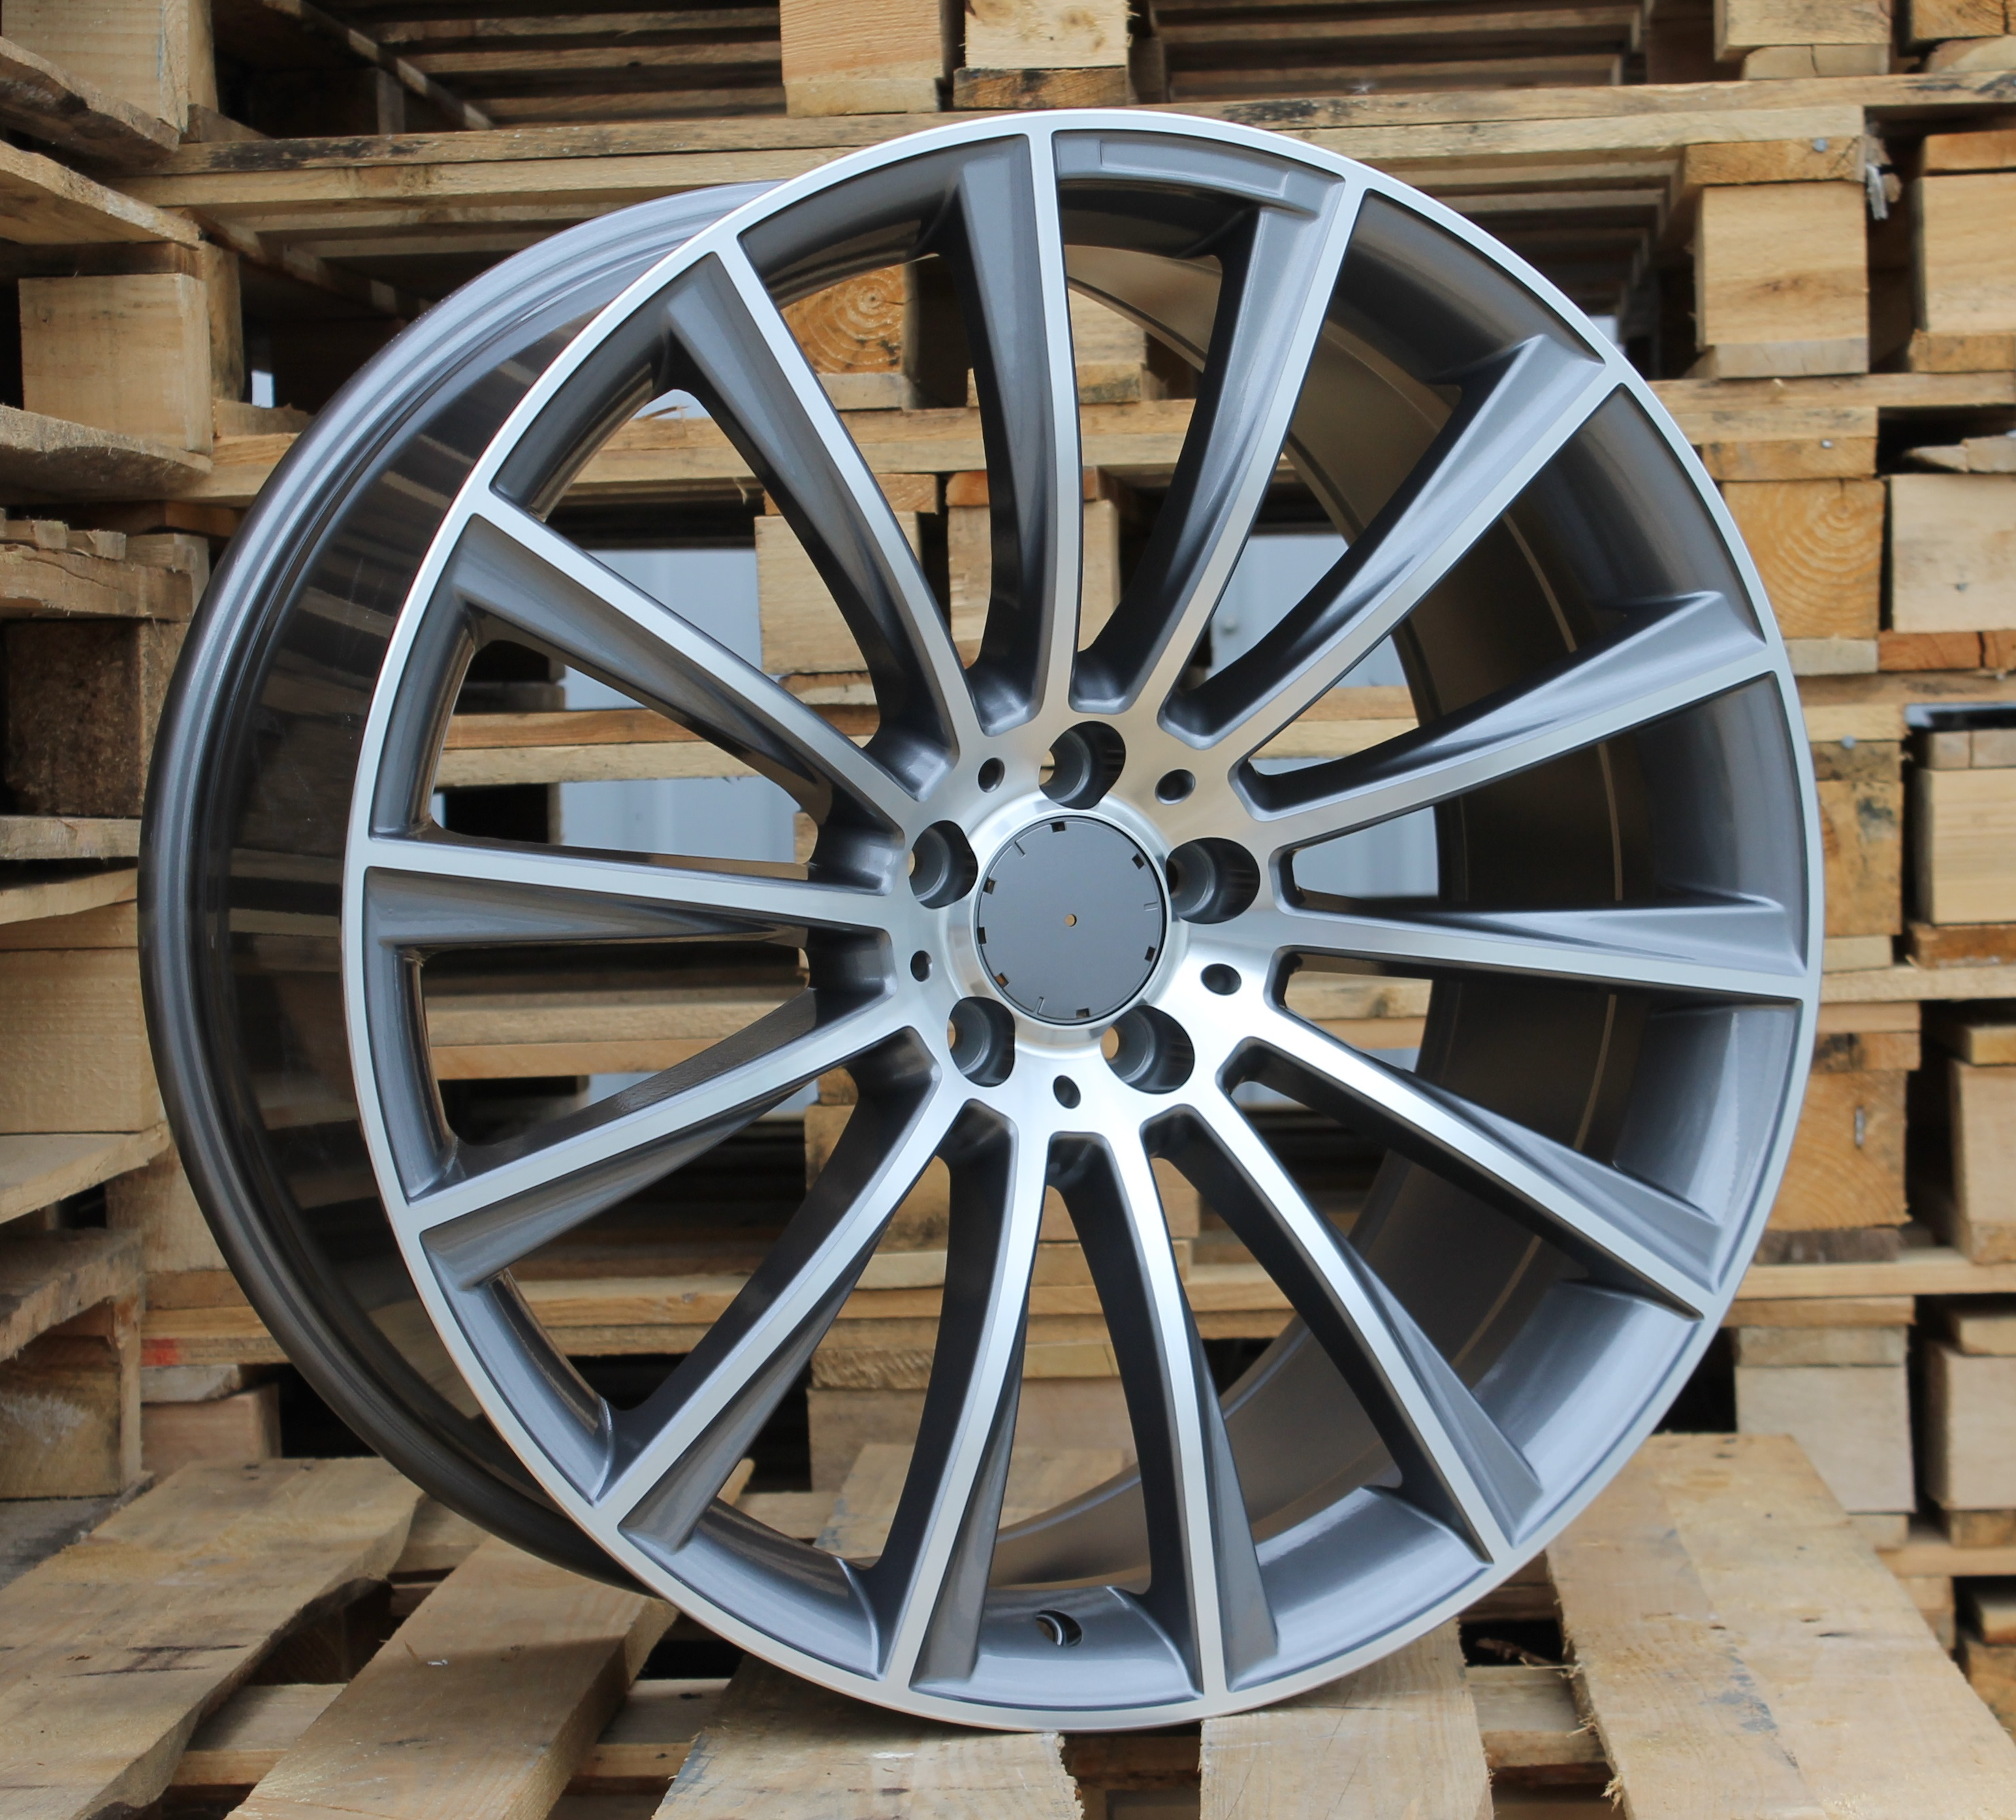 M18X9.5 5X112 ET48 66.56 BY1048 MG+Powder Coating RWR MER (+3eur) (P)## 9.5x18 ET50 5x112